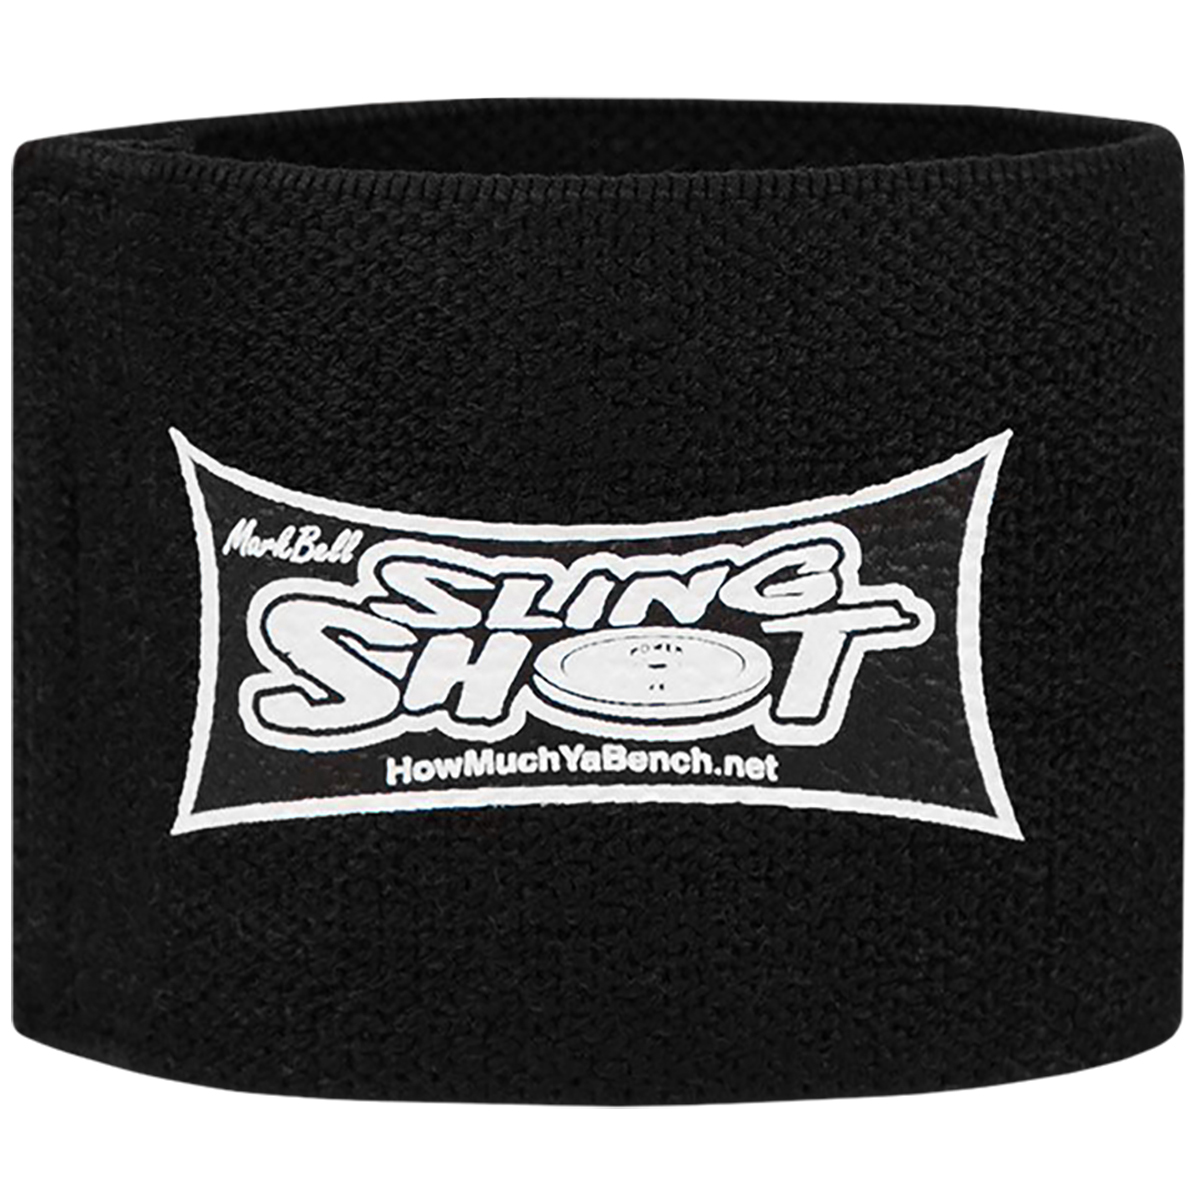 Sling-Shot-Compression-Cuff-Upper-Body-by-Mark-Bell-Elastic-joint-support-band thumbnail 5